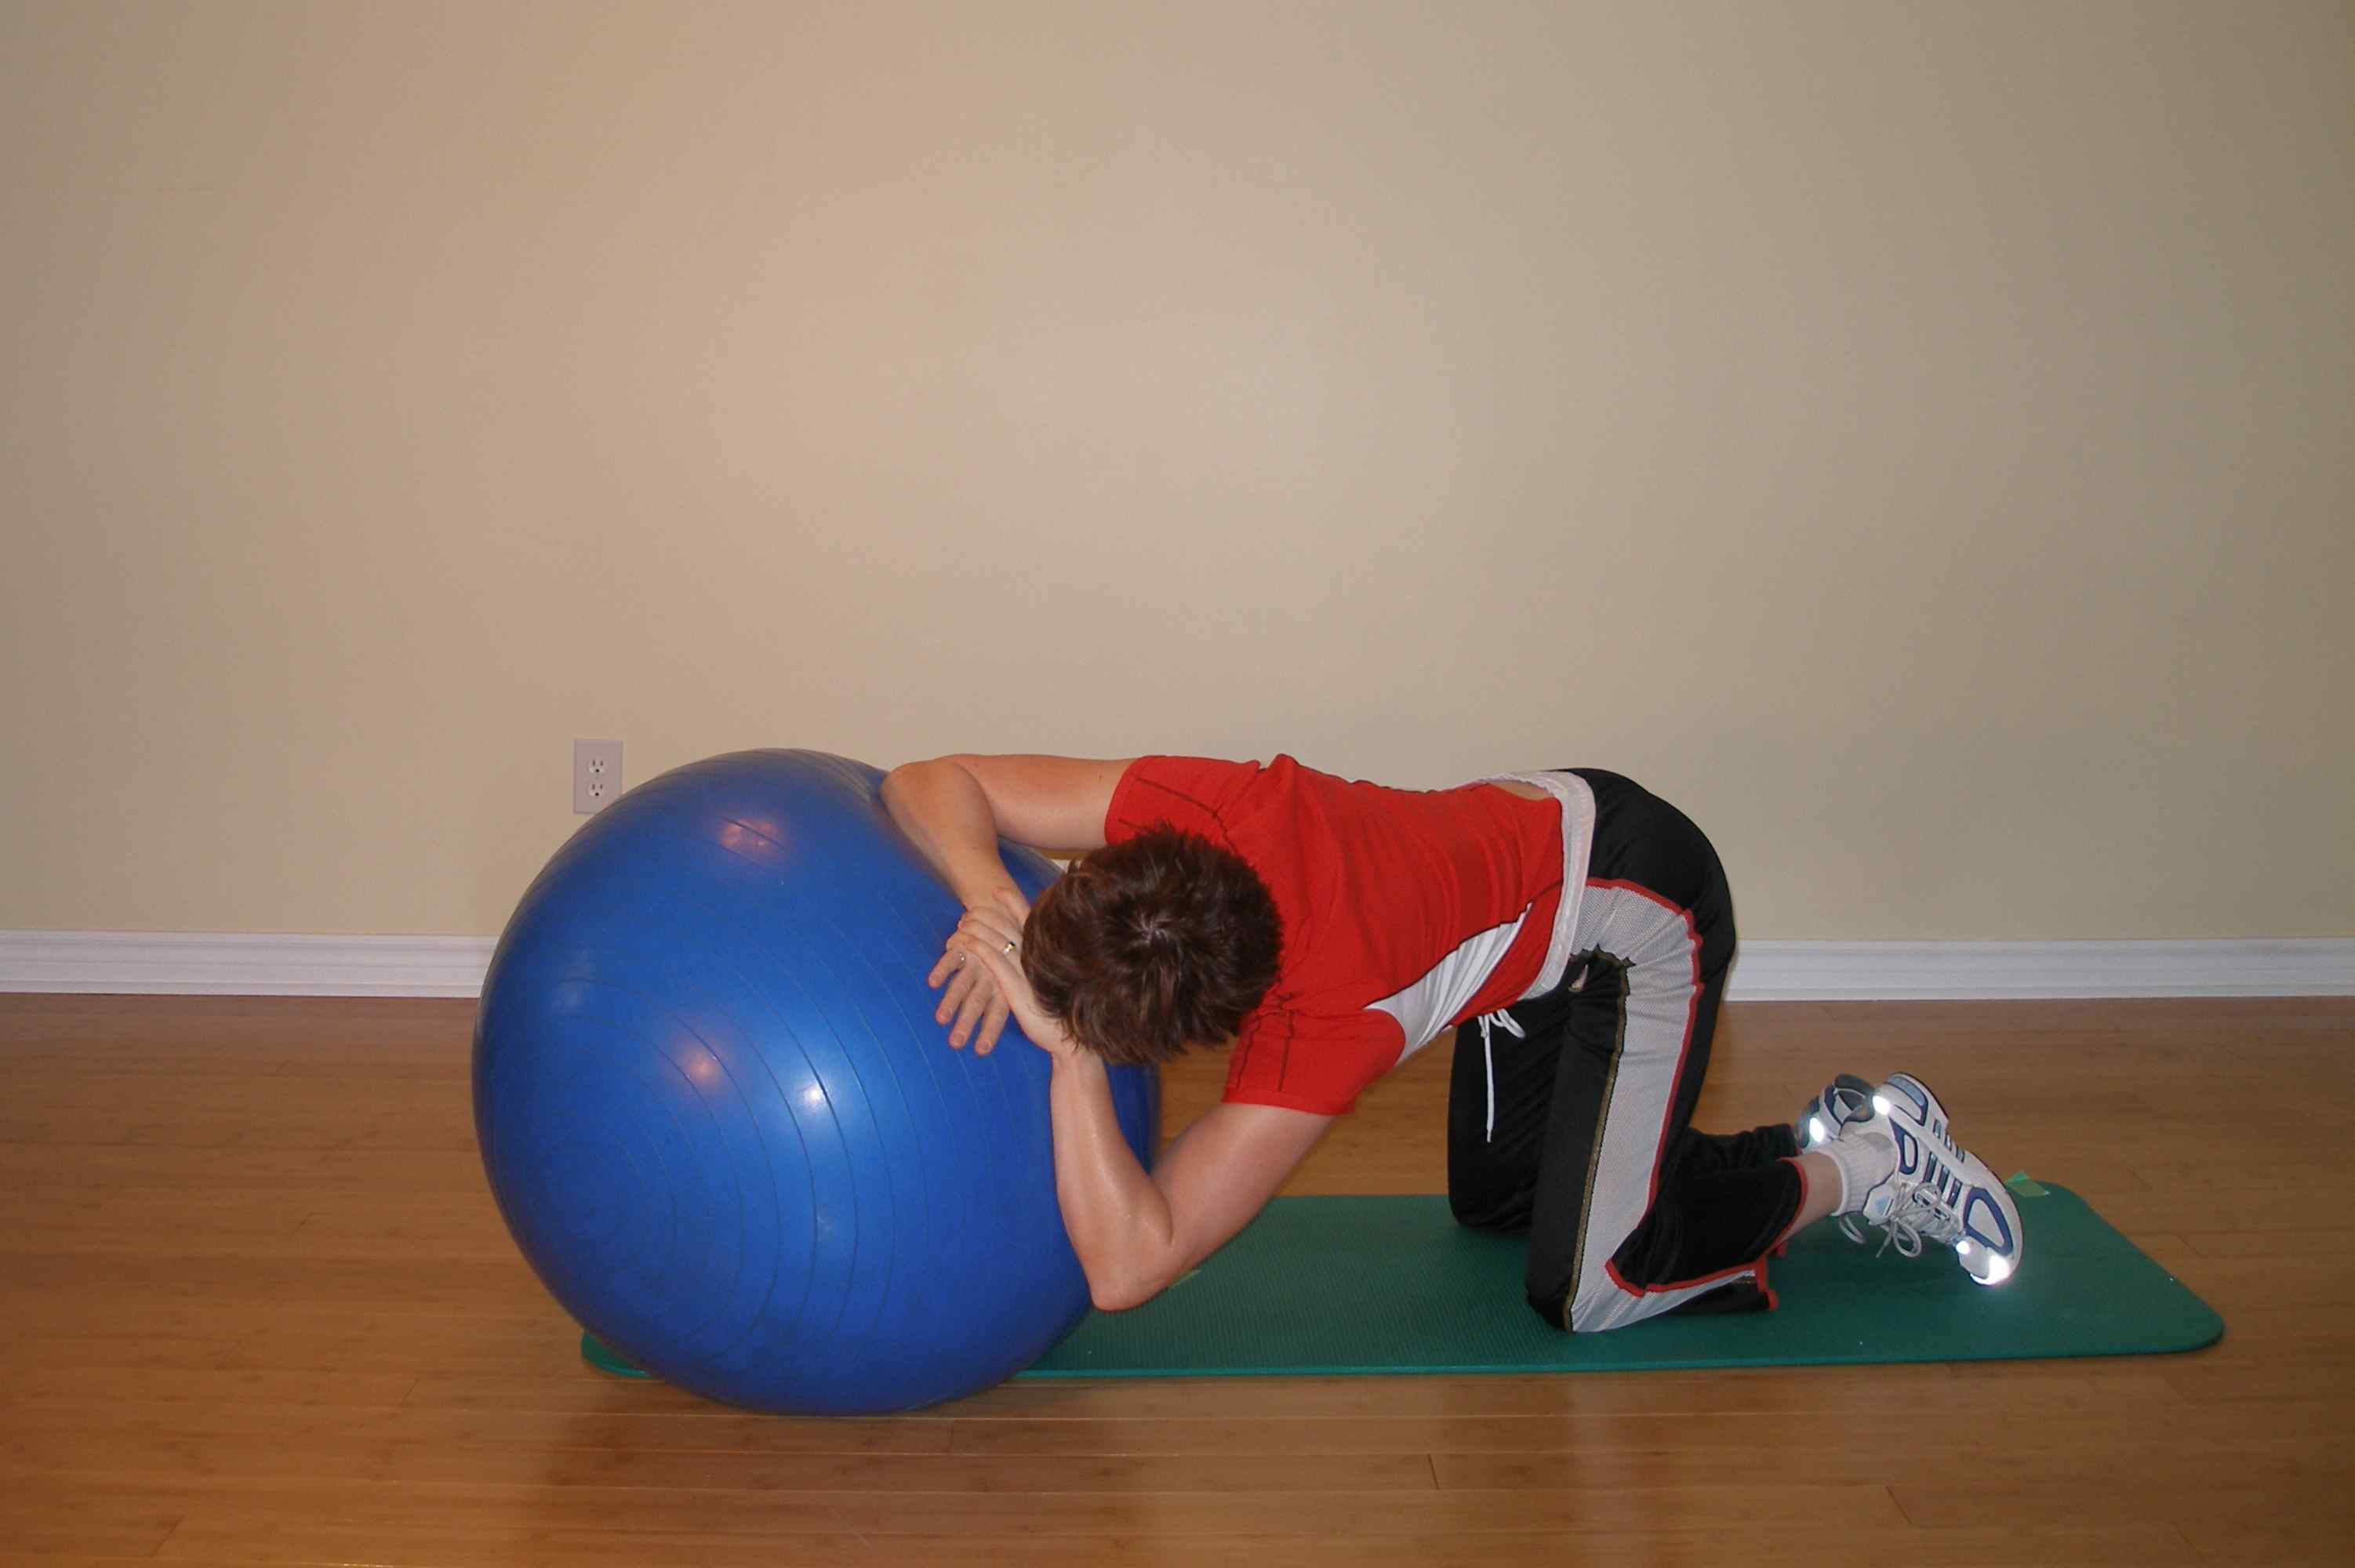 lat stretch and trunk rotation using the exercise ball